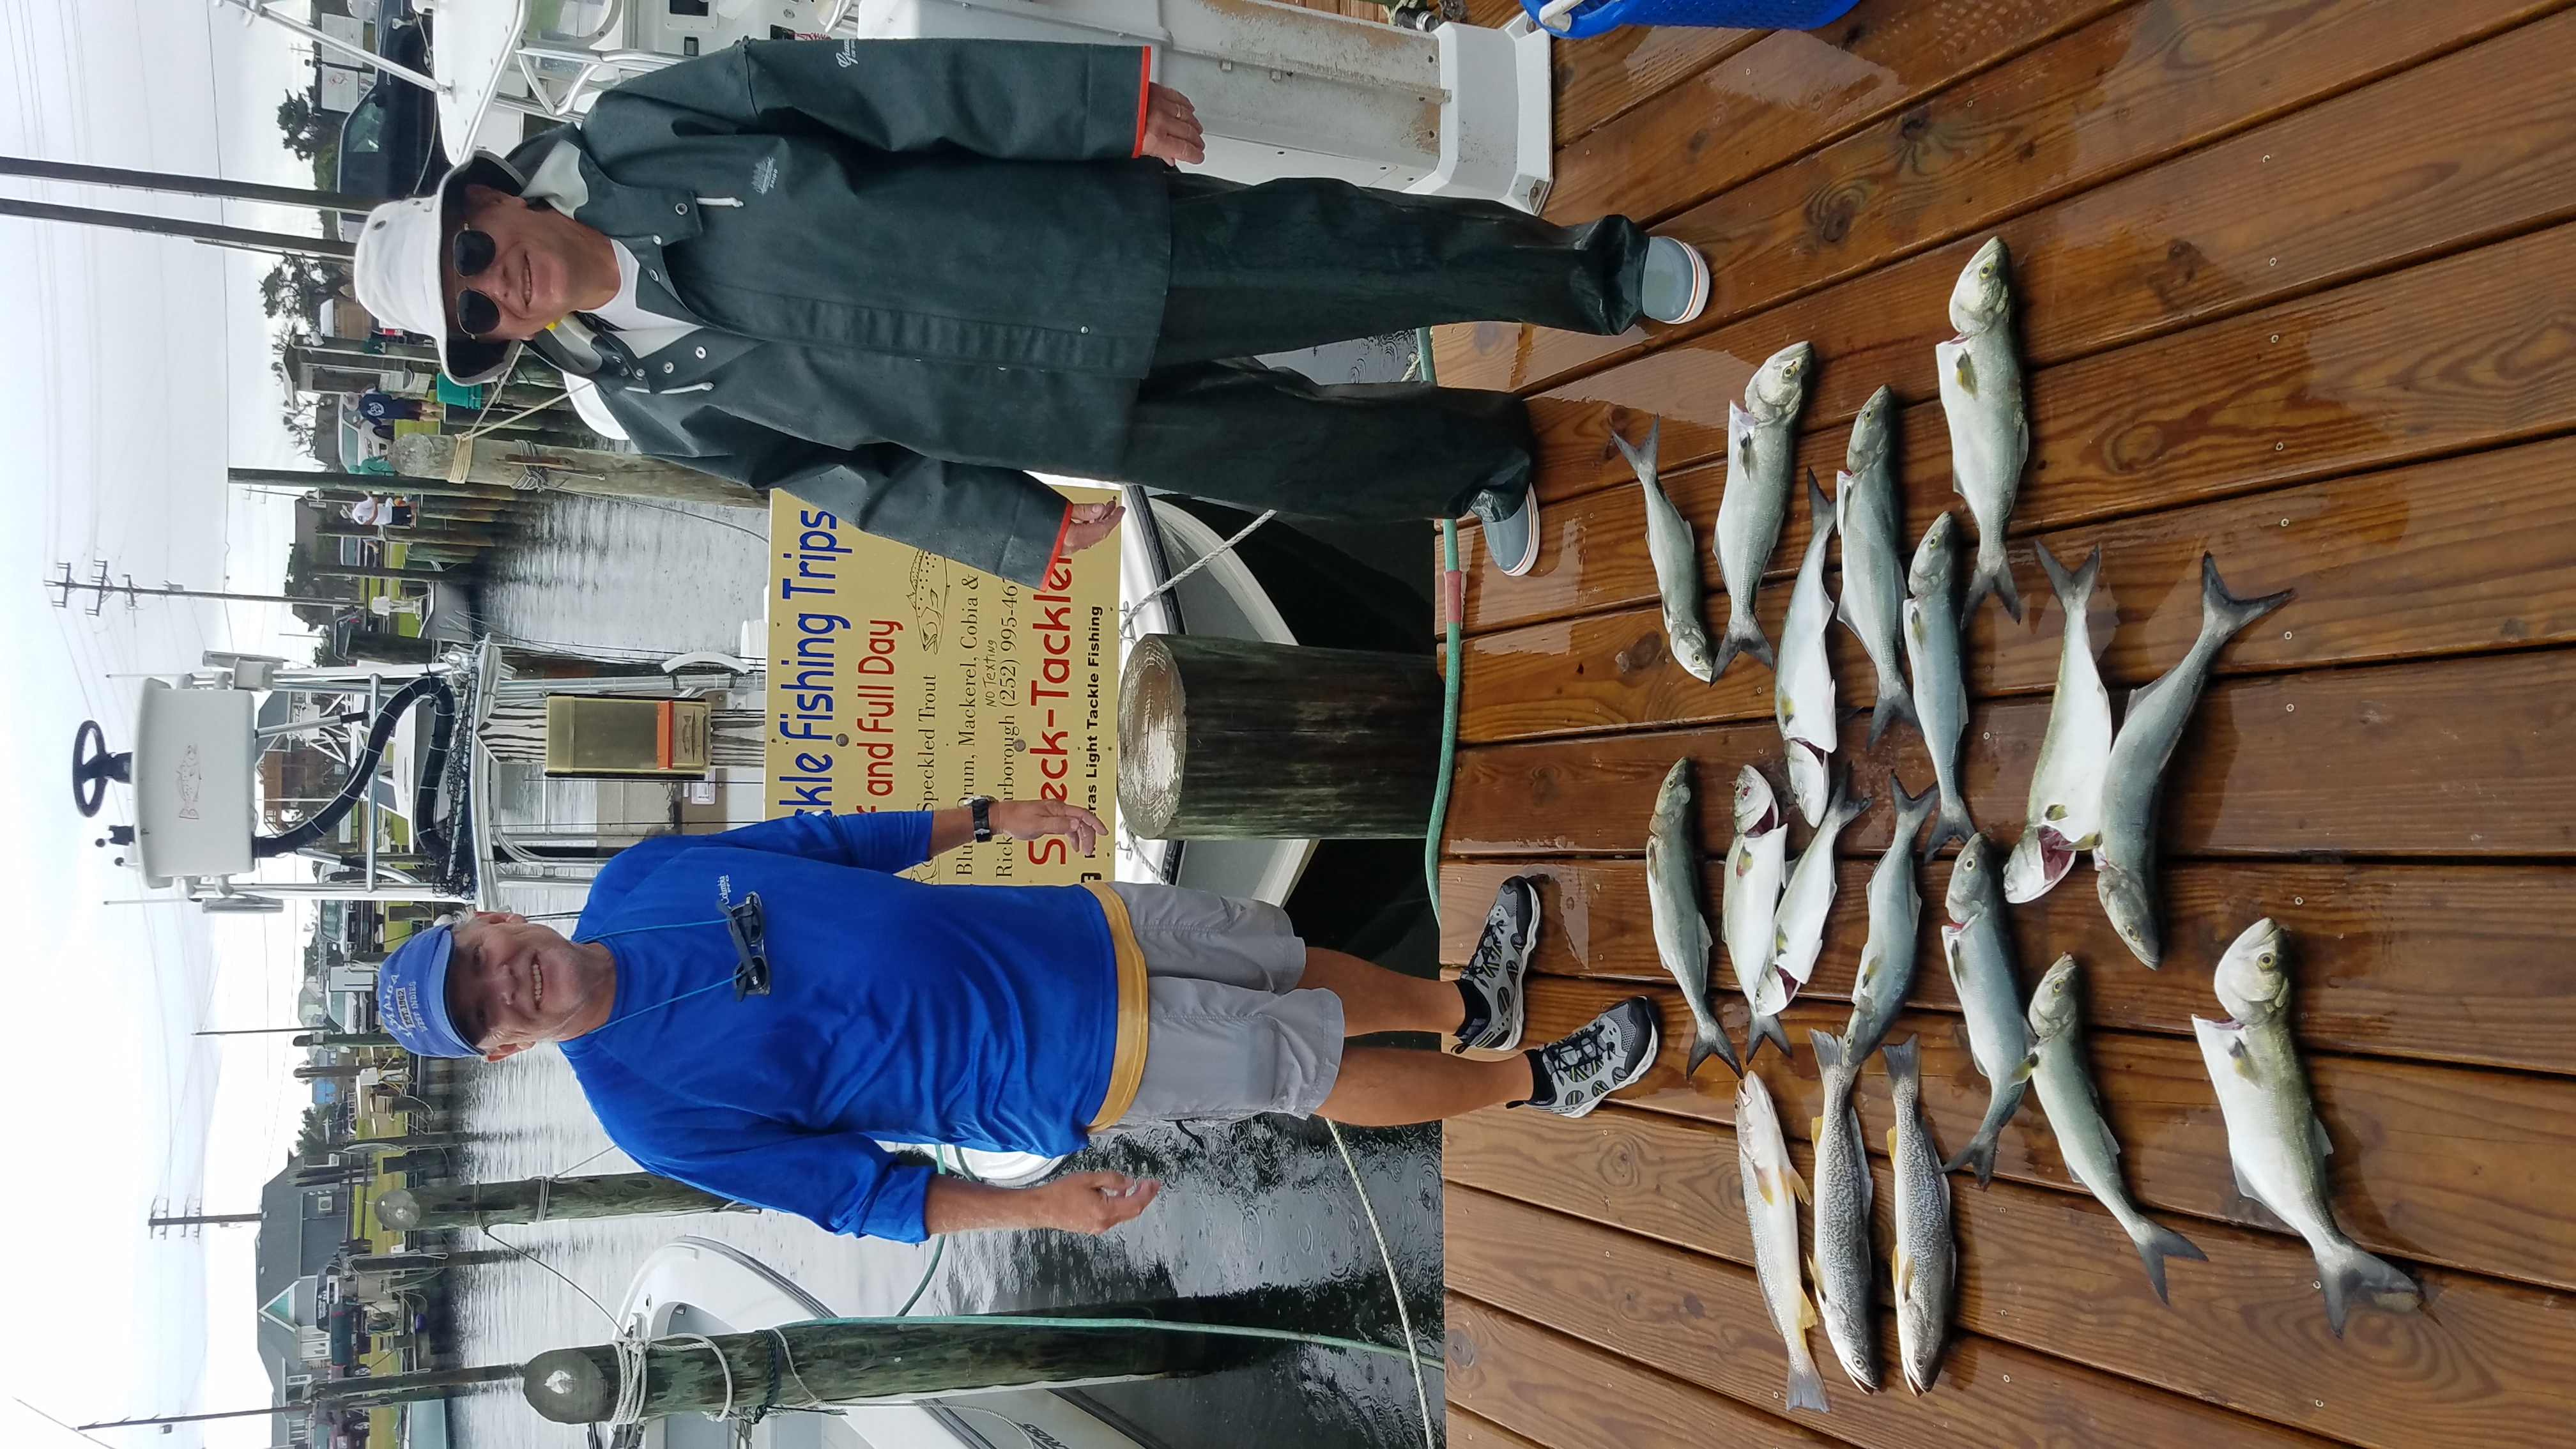 Speck-Tackler Fishing Speckled Trout Teach's Lair Inshore Charters